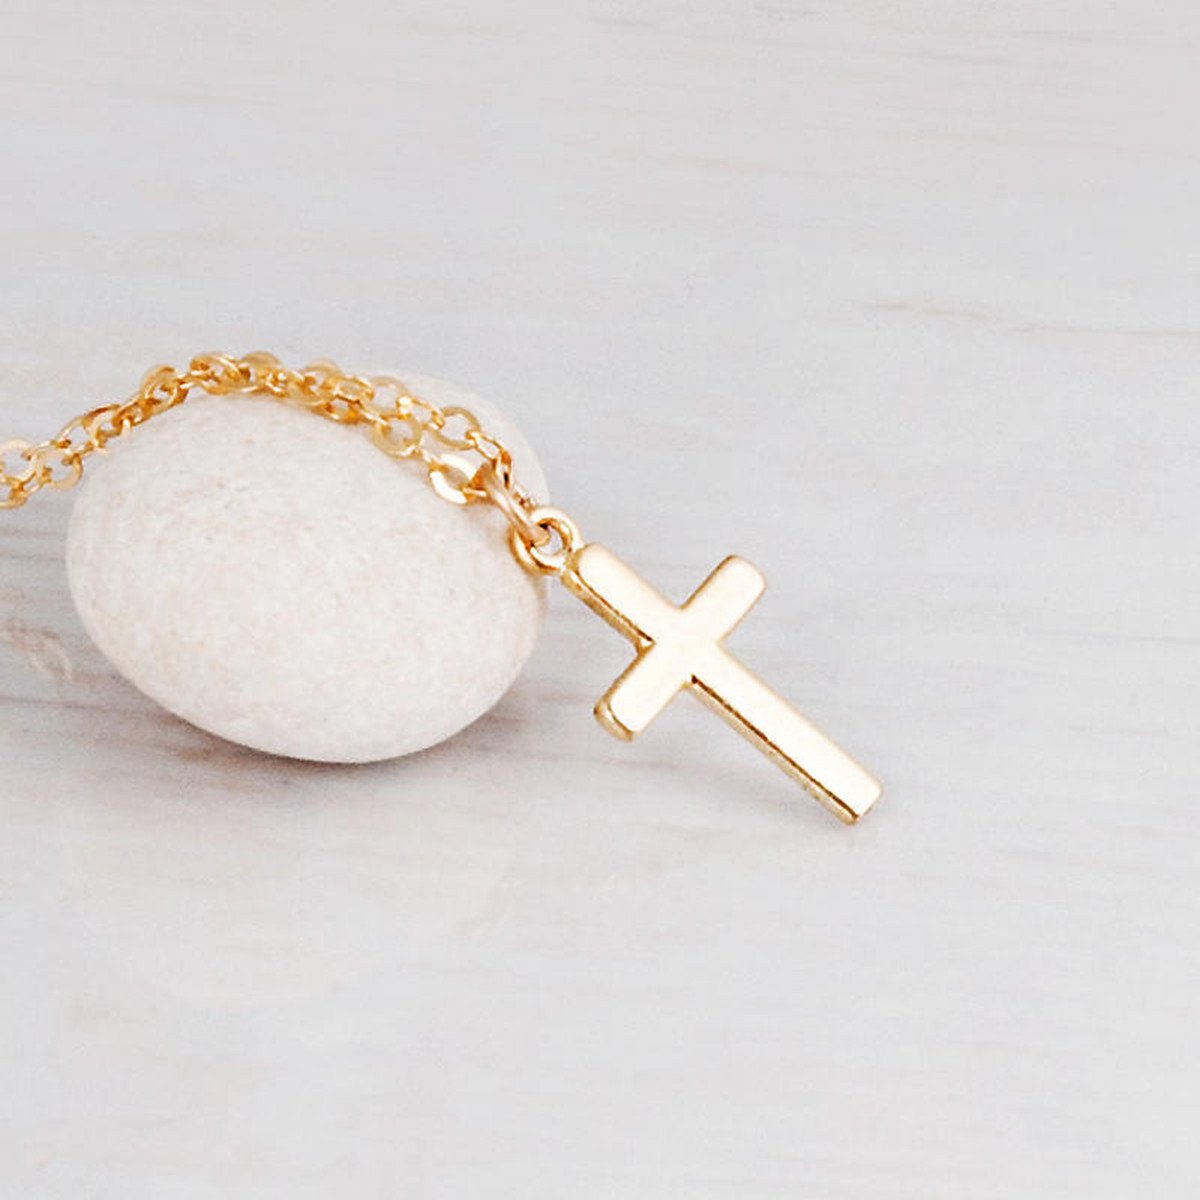 Fremttly Womens Friendship Gift Handmade 14k Gold Filled Dainty Cross Choker Necklace-CK3-Cross by Fremttly (Image #6)